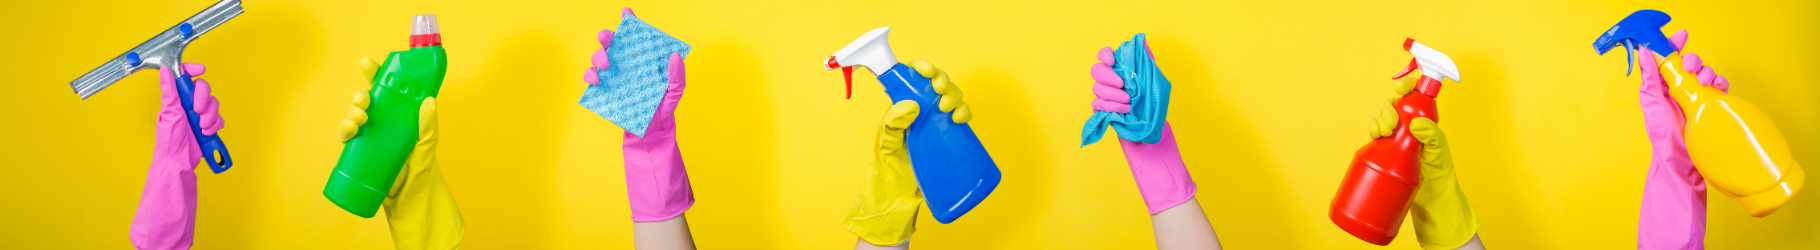 banner showing cleaning products